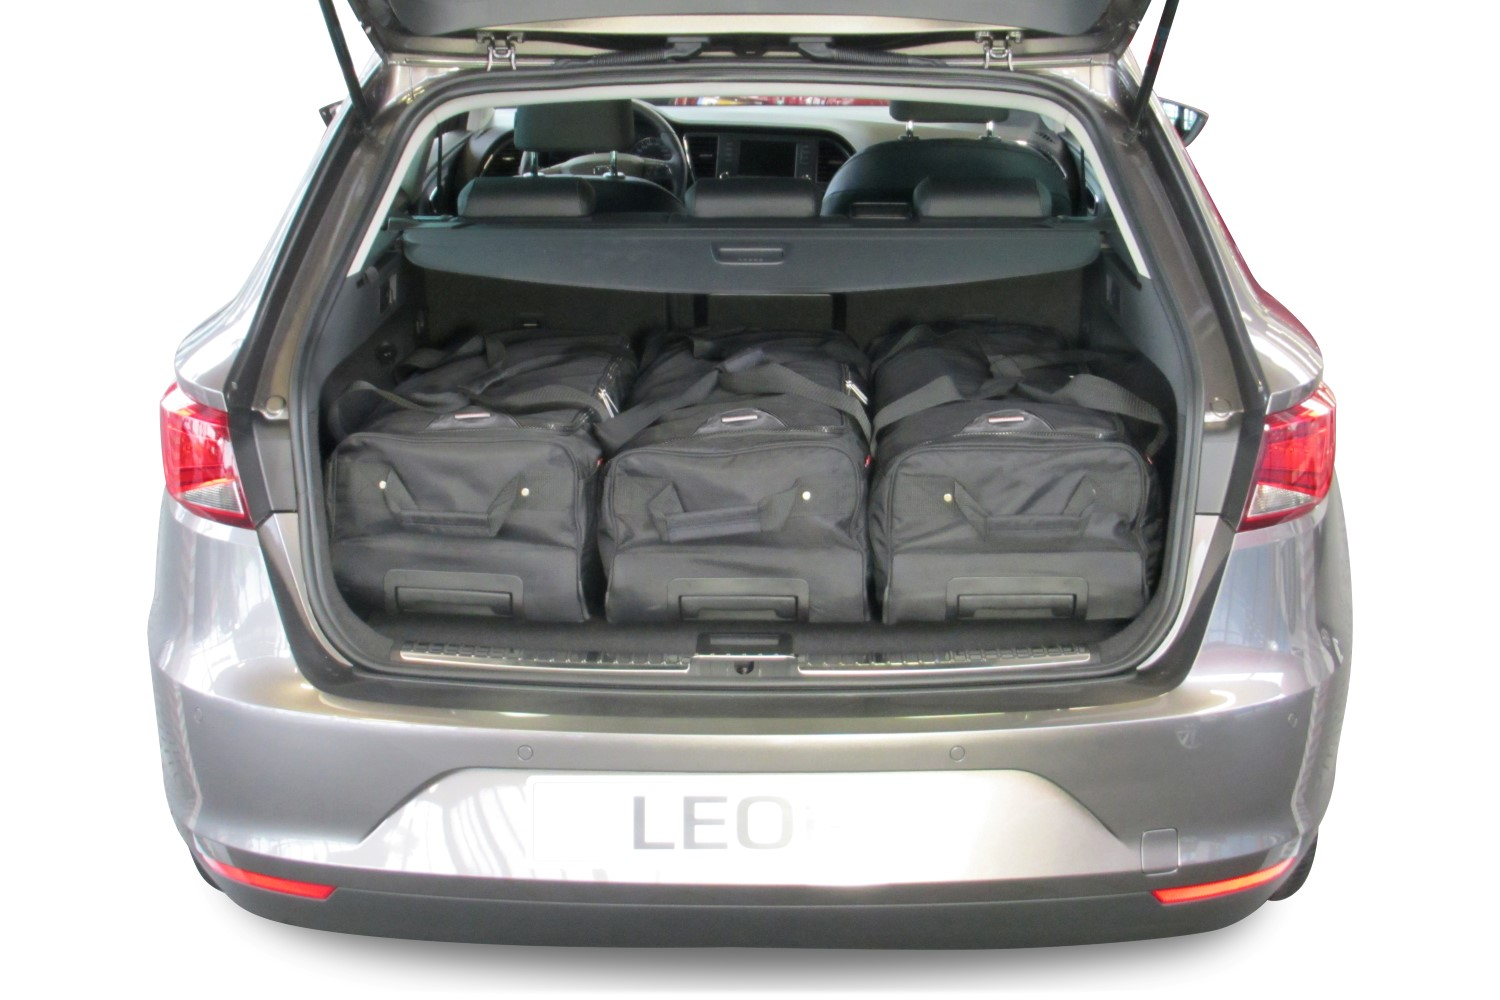 leon st 5f 2014 present seat leon st 5f 2014 present car bags travel bags. Black Bedroom Furniture Sets. Home Design Ideas